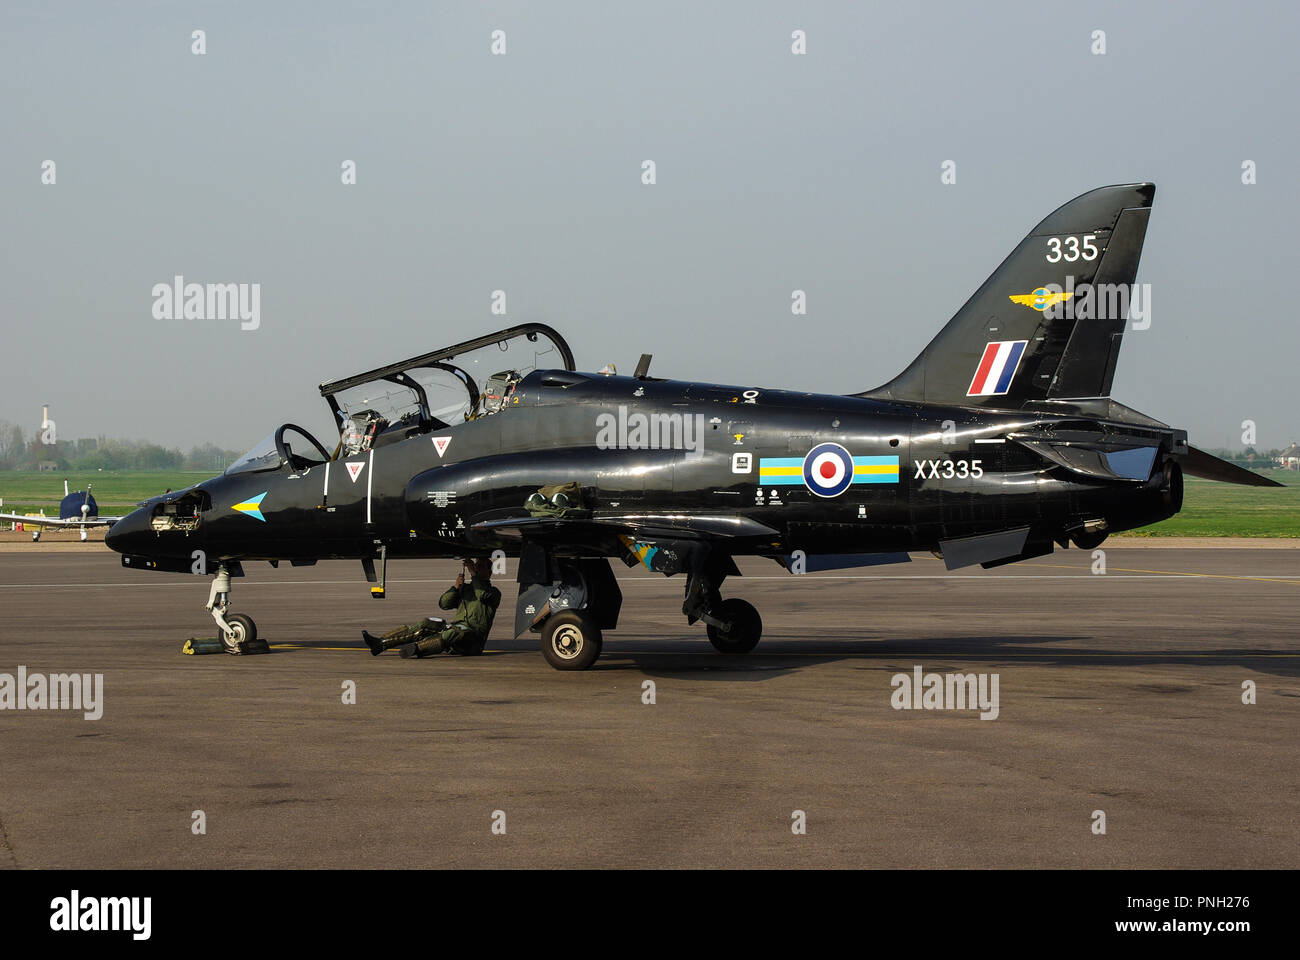 British Aerospace BAe Hawk T1 at London Southend Airport with engineer working underneath. Ready for Southend Airshow - Stock Image